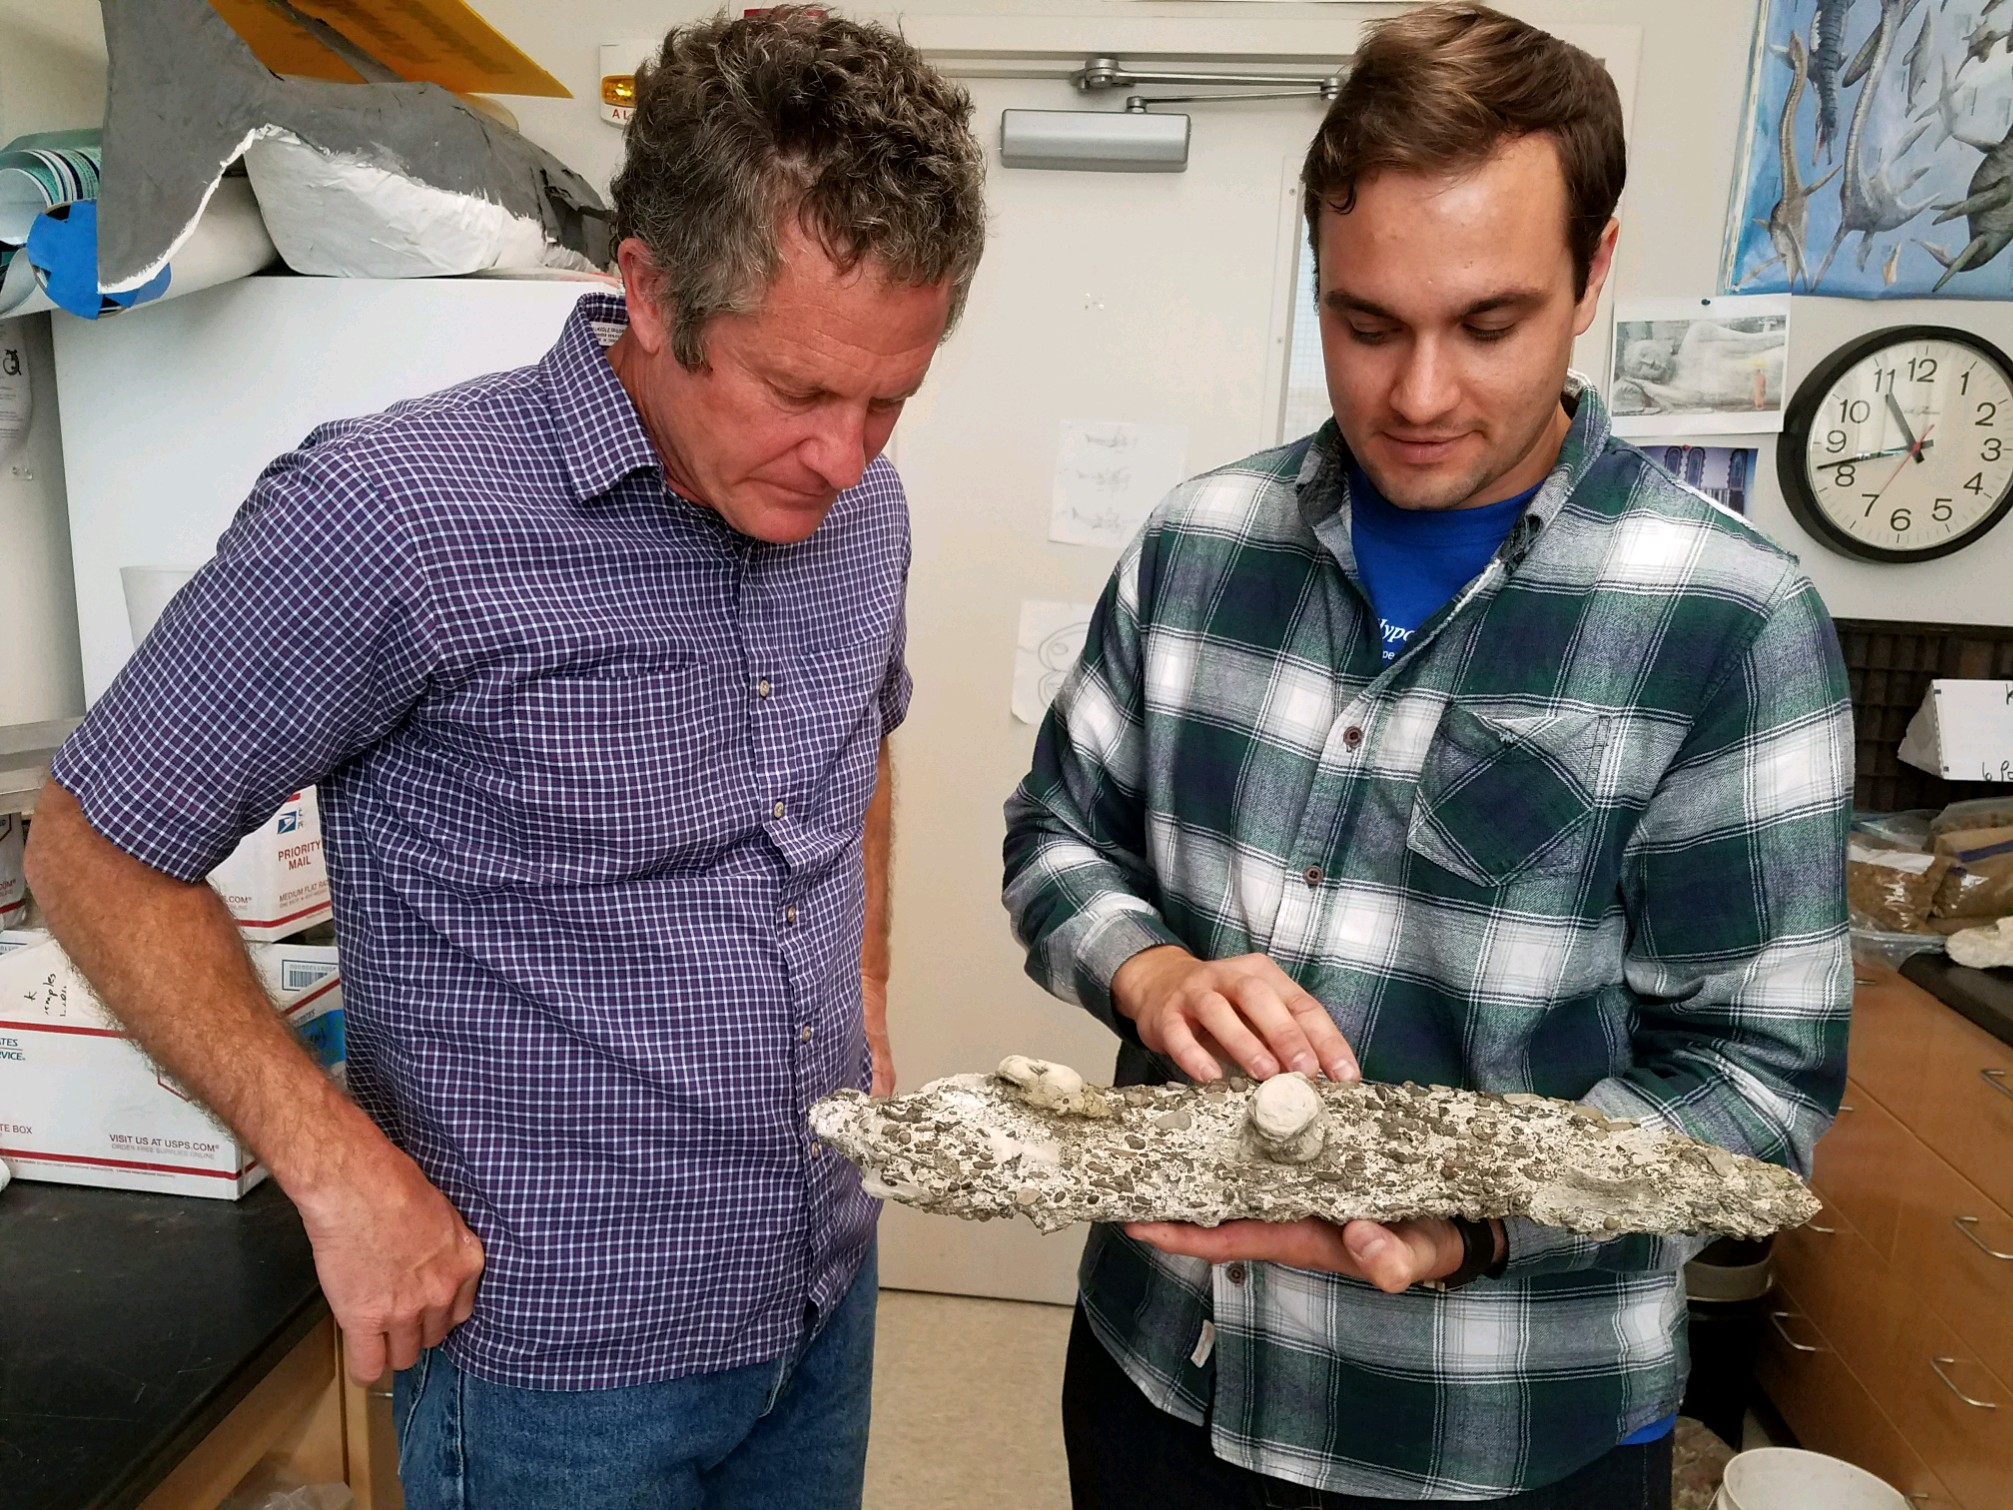 How an unlikely N.J. duo made a 60-million-year-old discovery